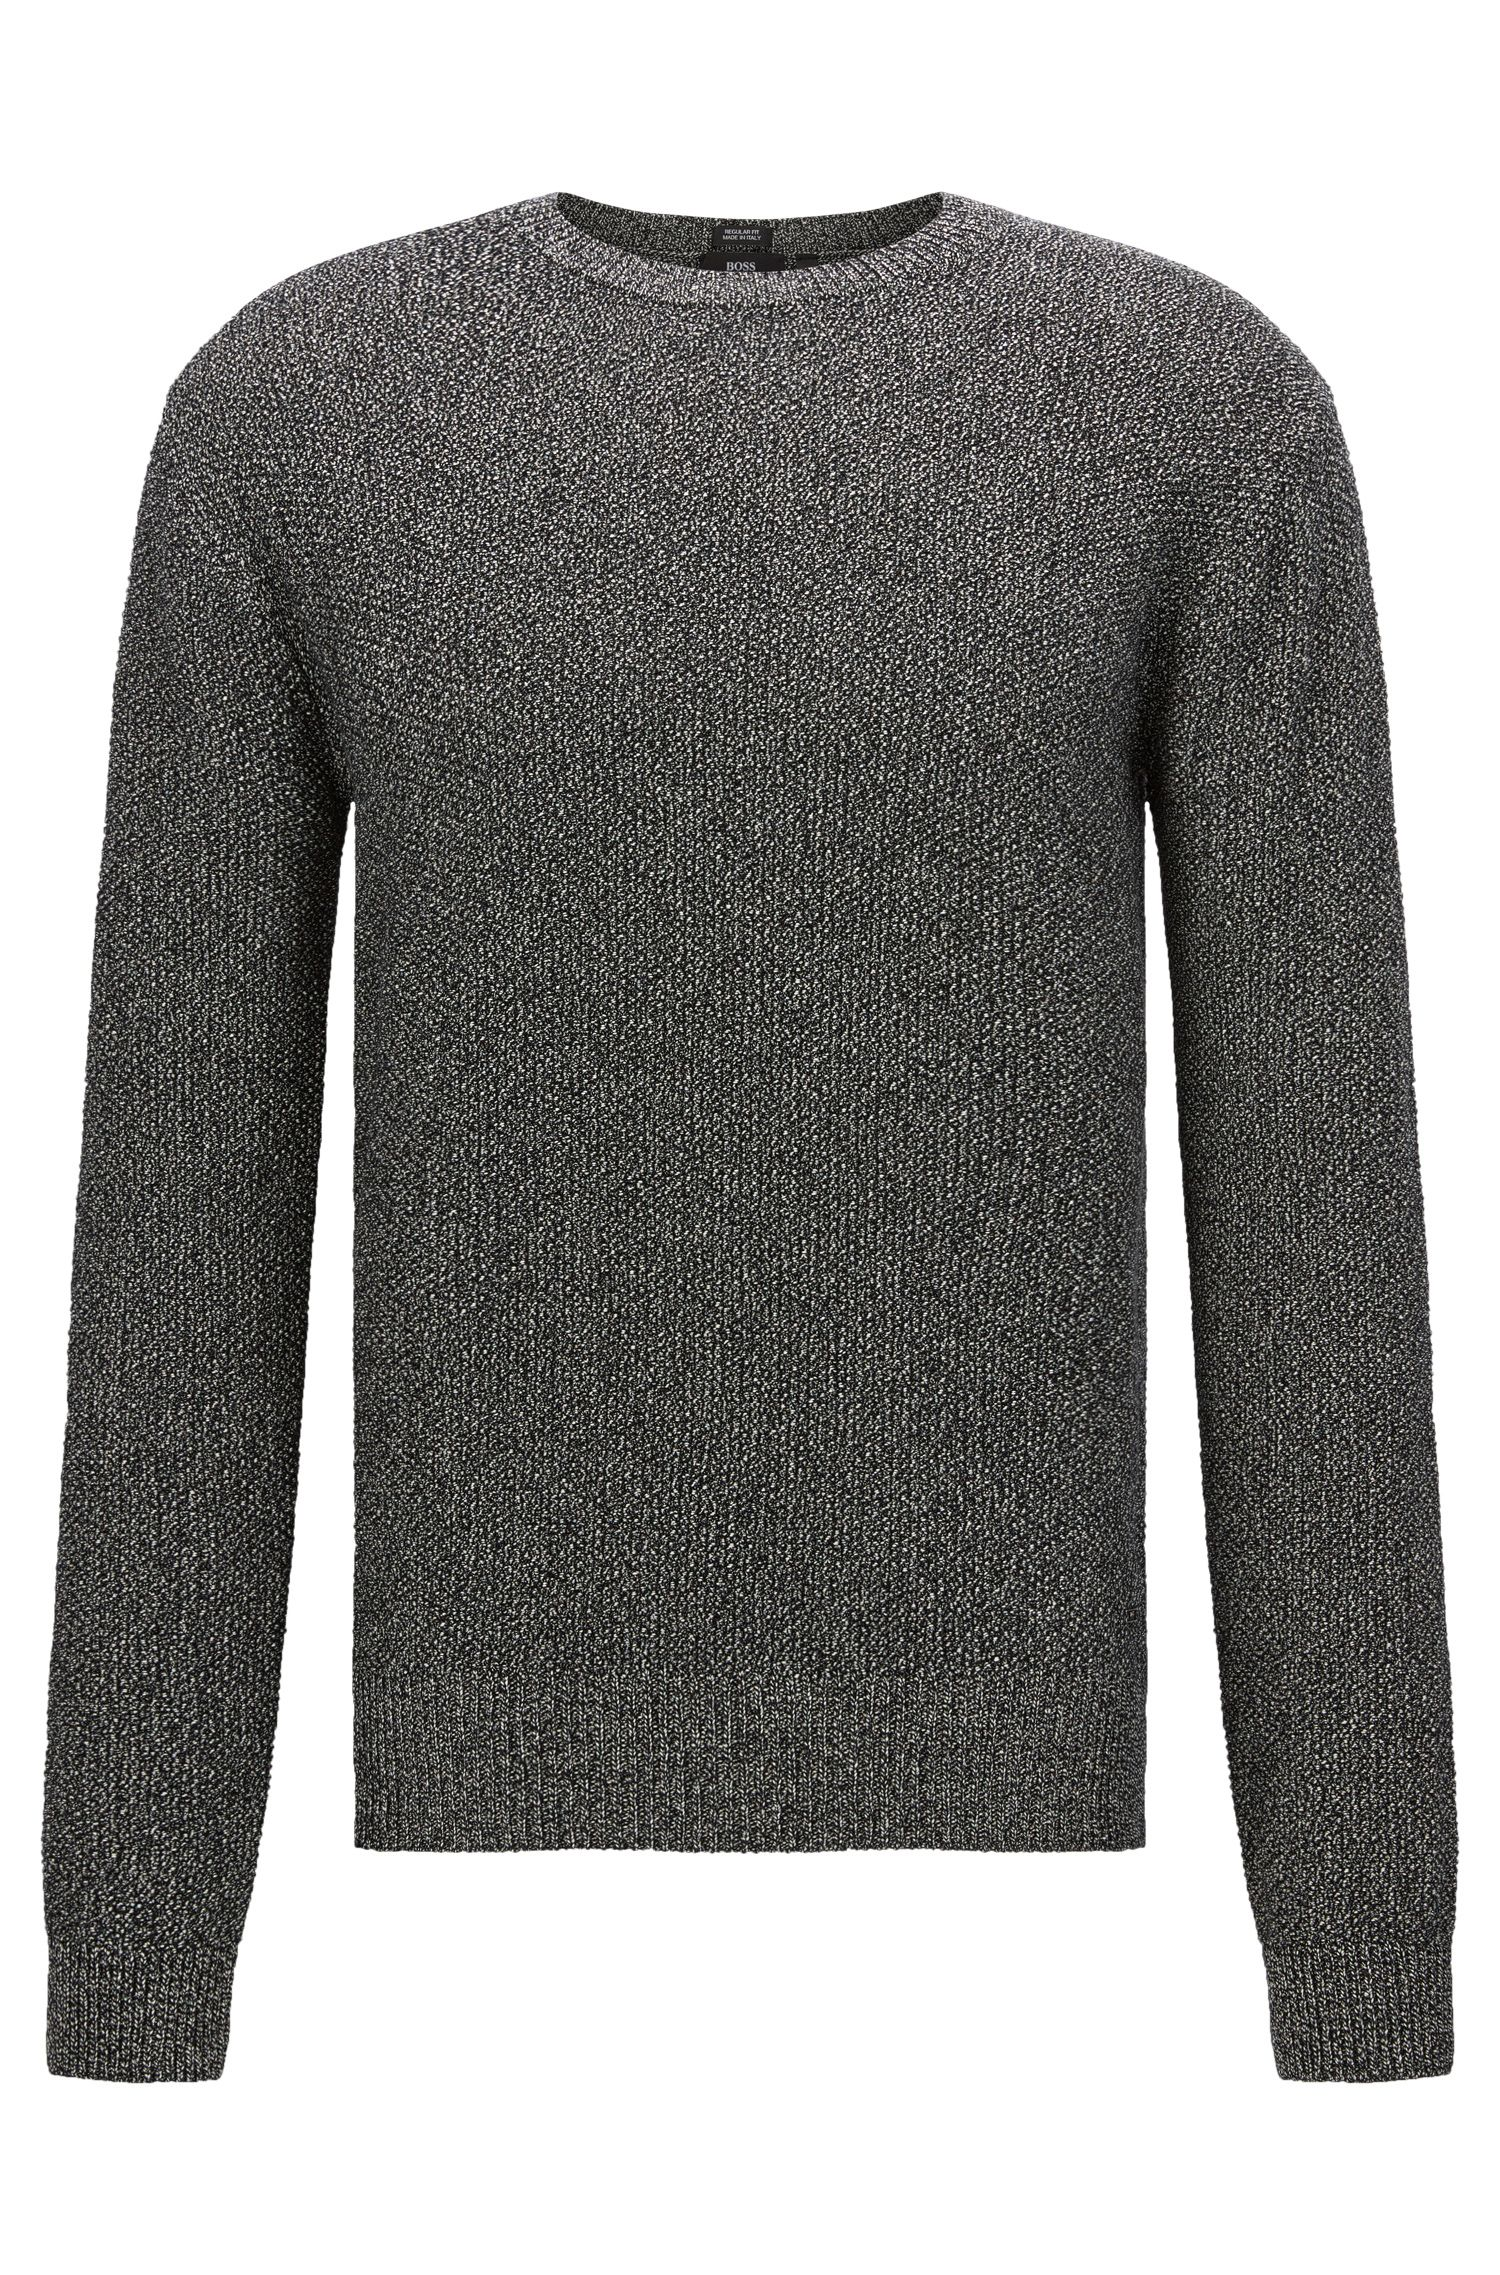 Mottled regular-fit sweater in cotton: 'Orsino'